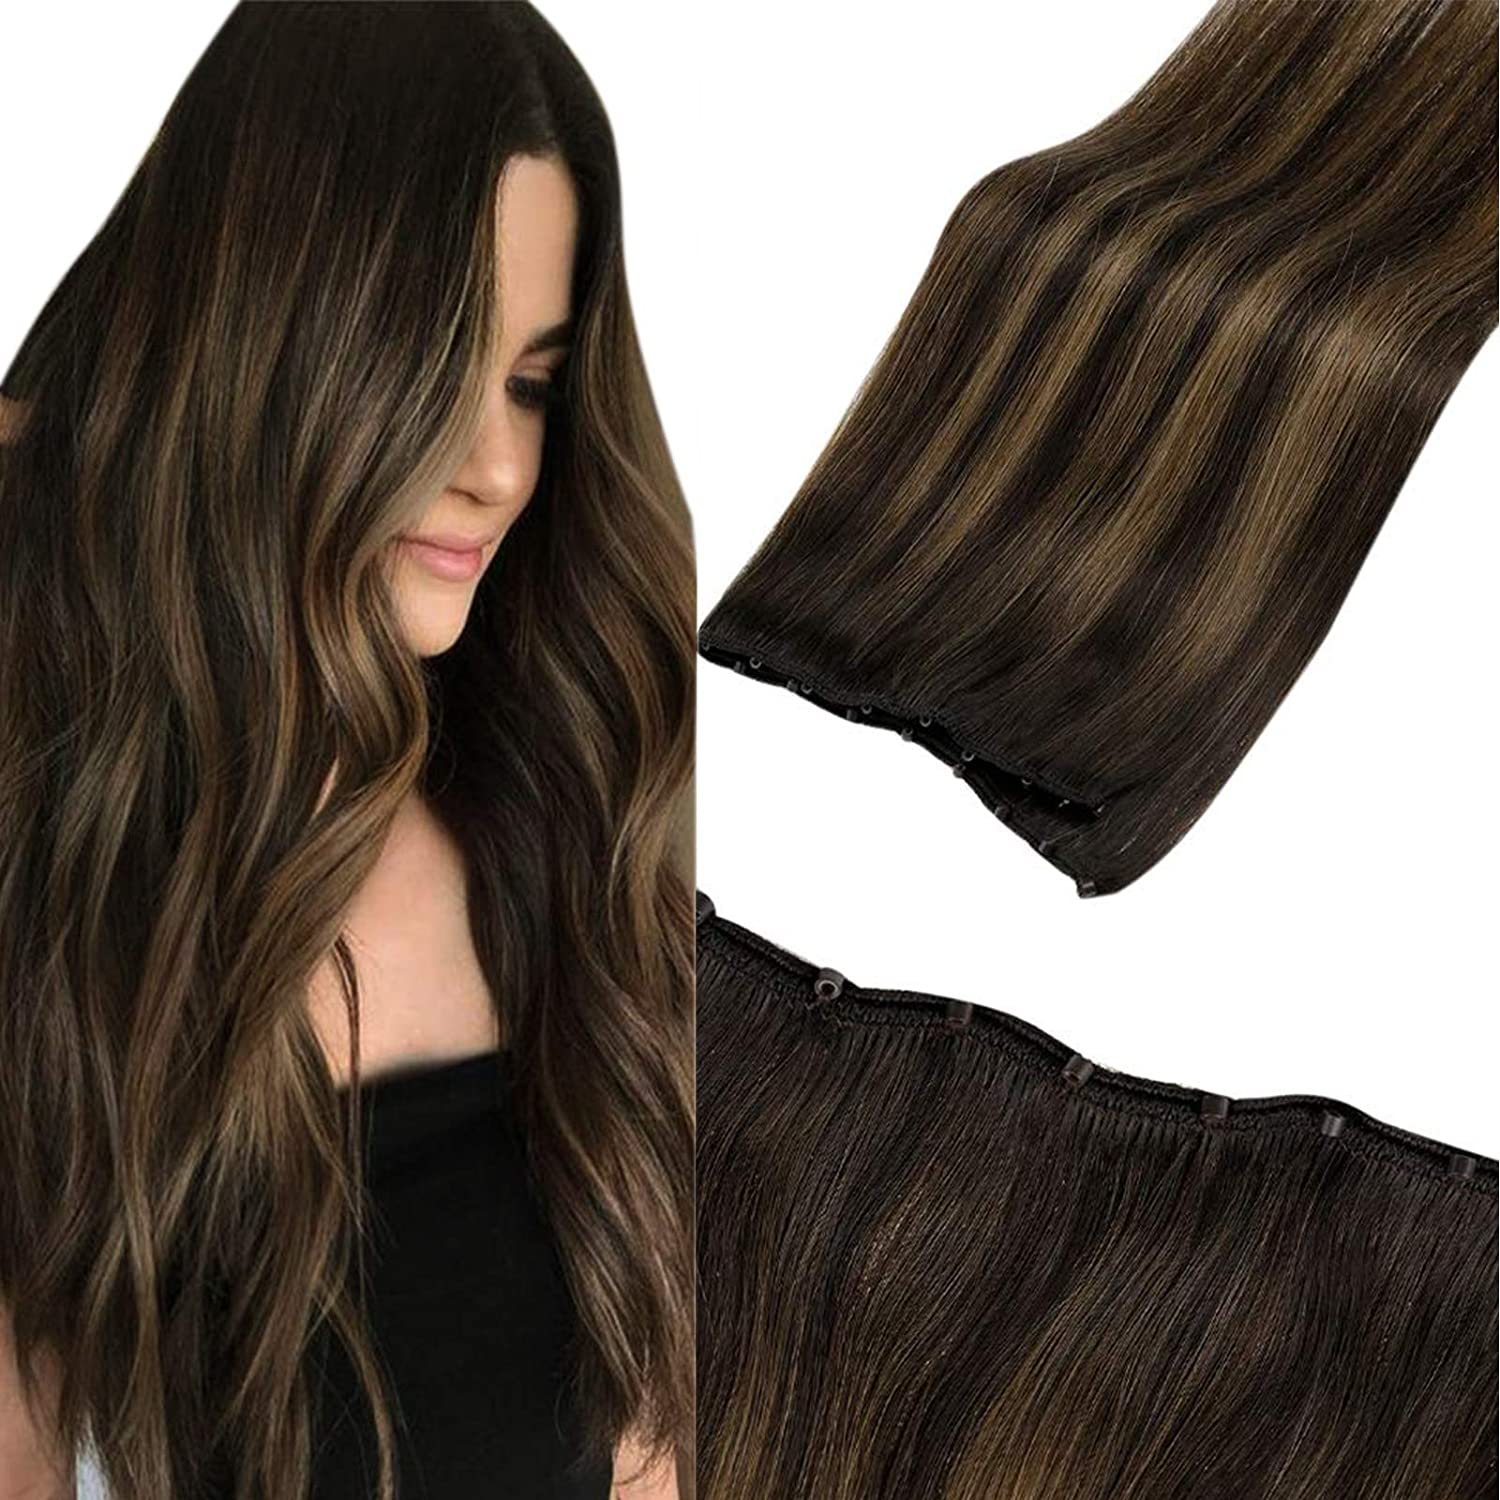 VeSunny Remy Micro Loop Weft Hair Extensions Brown Balayage Micro Weft Extensions Real Human Hair Double Weft 12